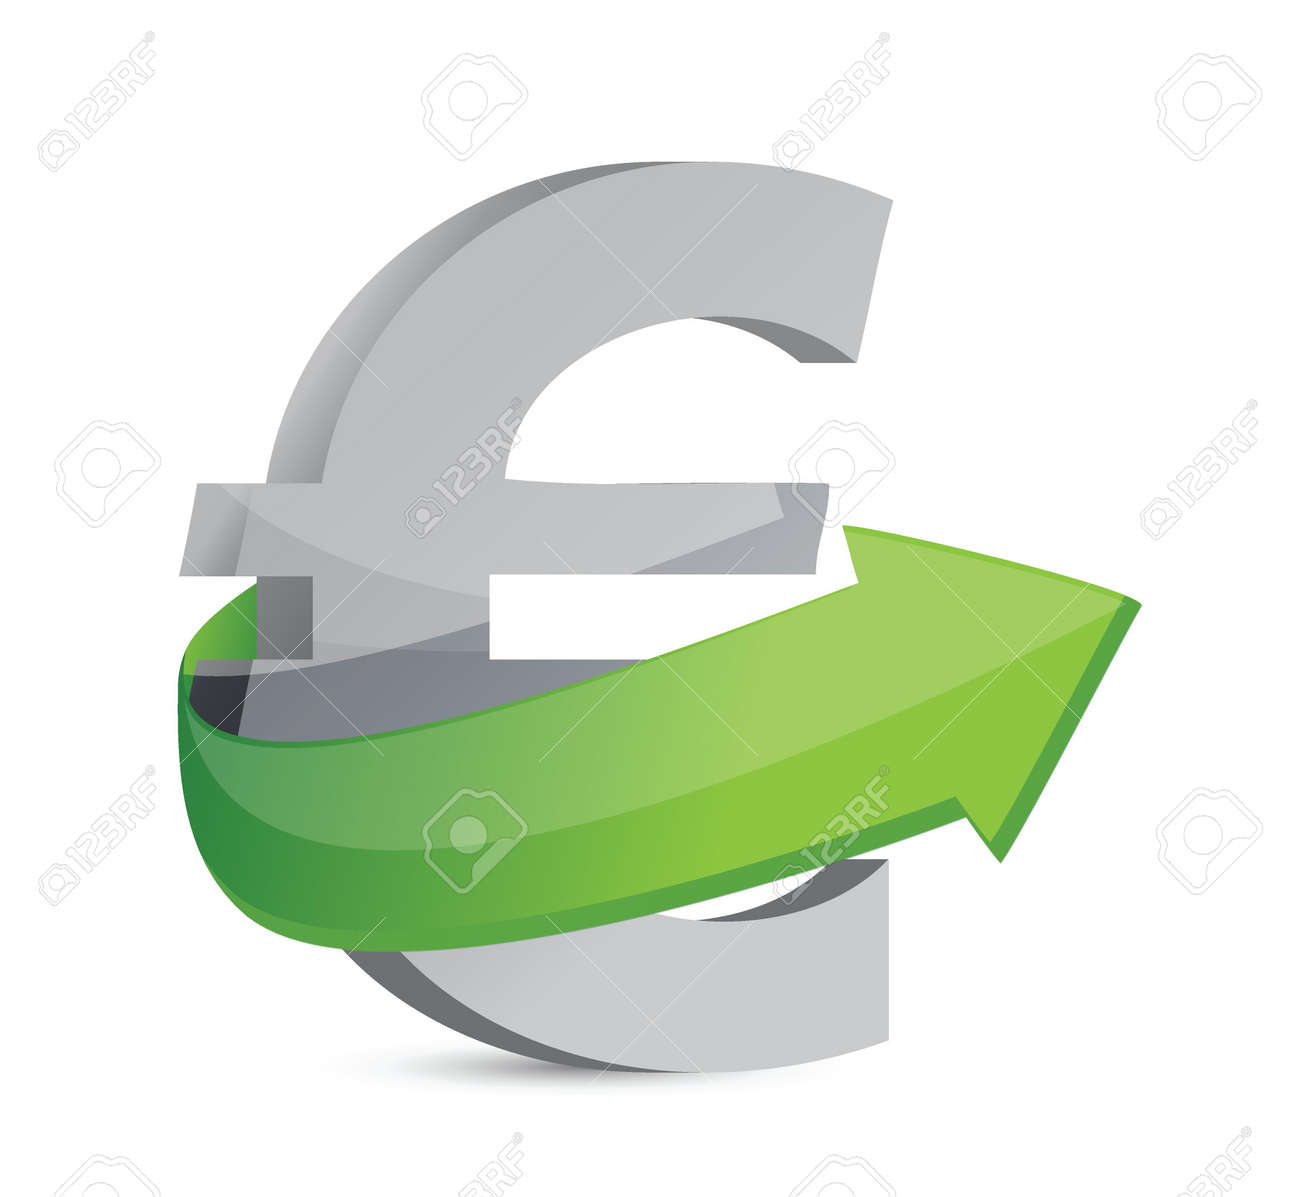 euro sign with arrow. Symbolize growth. Illustration design Stock Vector - 20662287